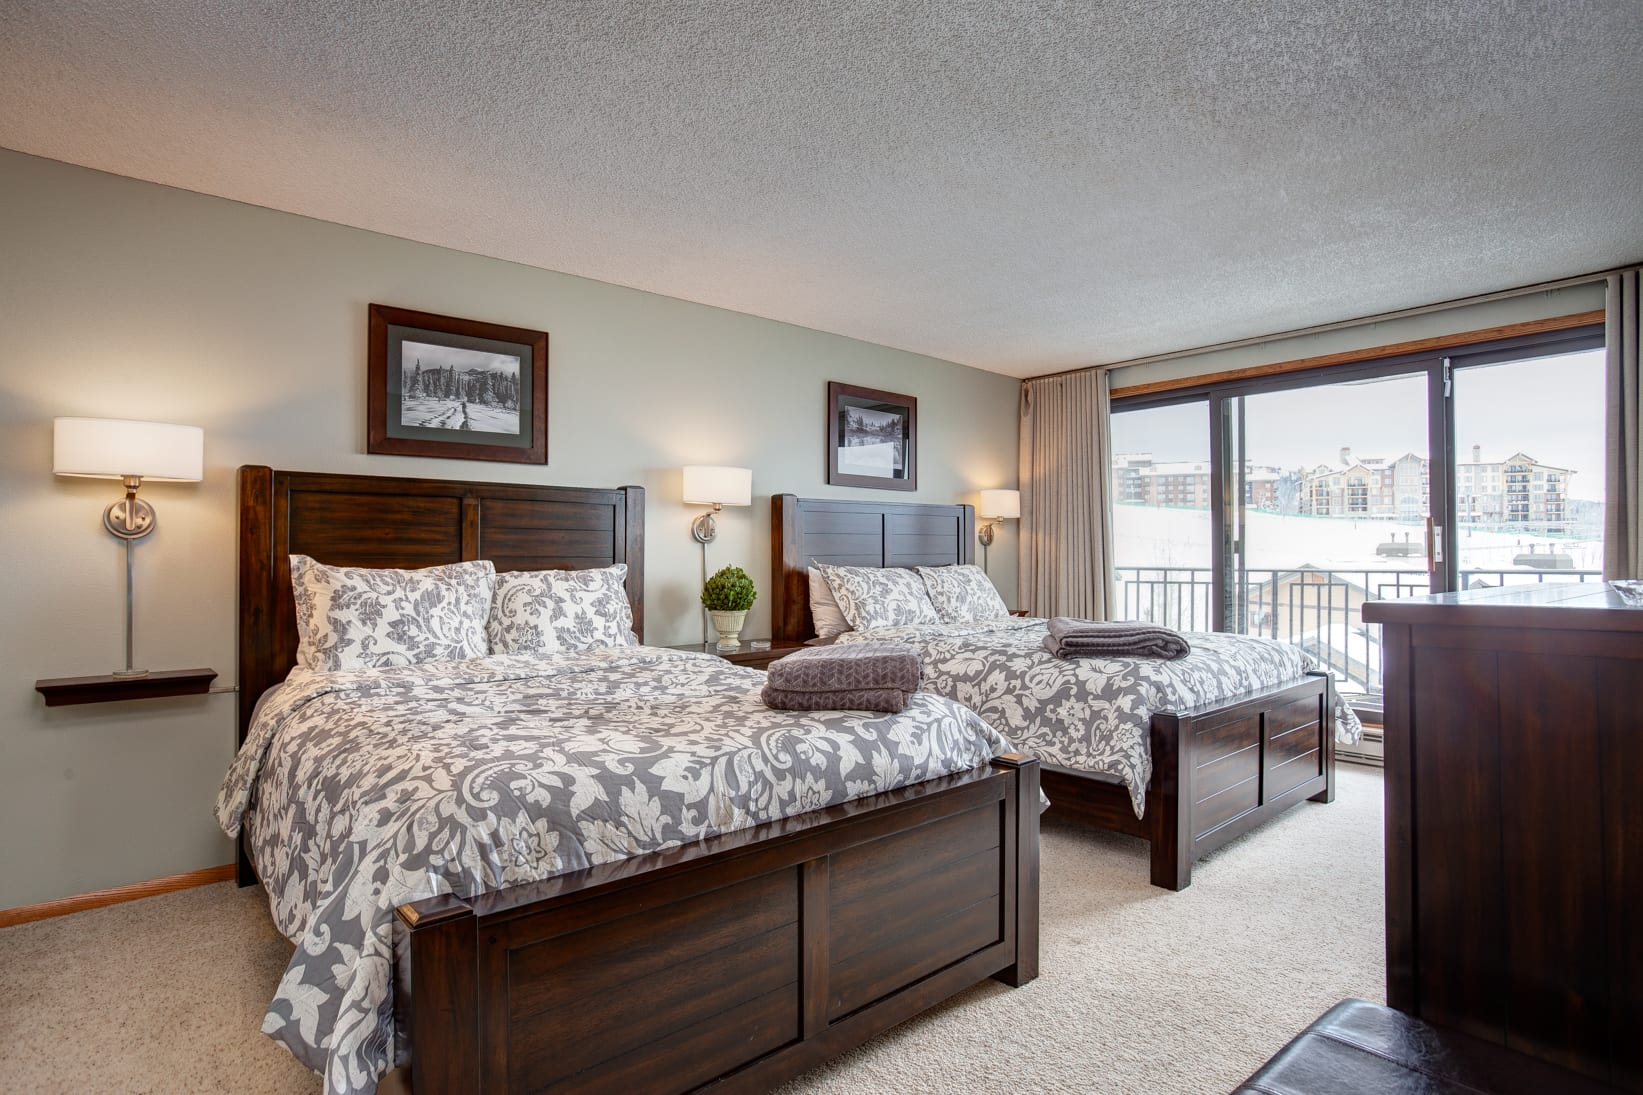 Room at Bronze Tree Condos by Wyndham Vacation Rentals Hotel in Steamboat Springs.